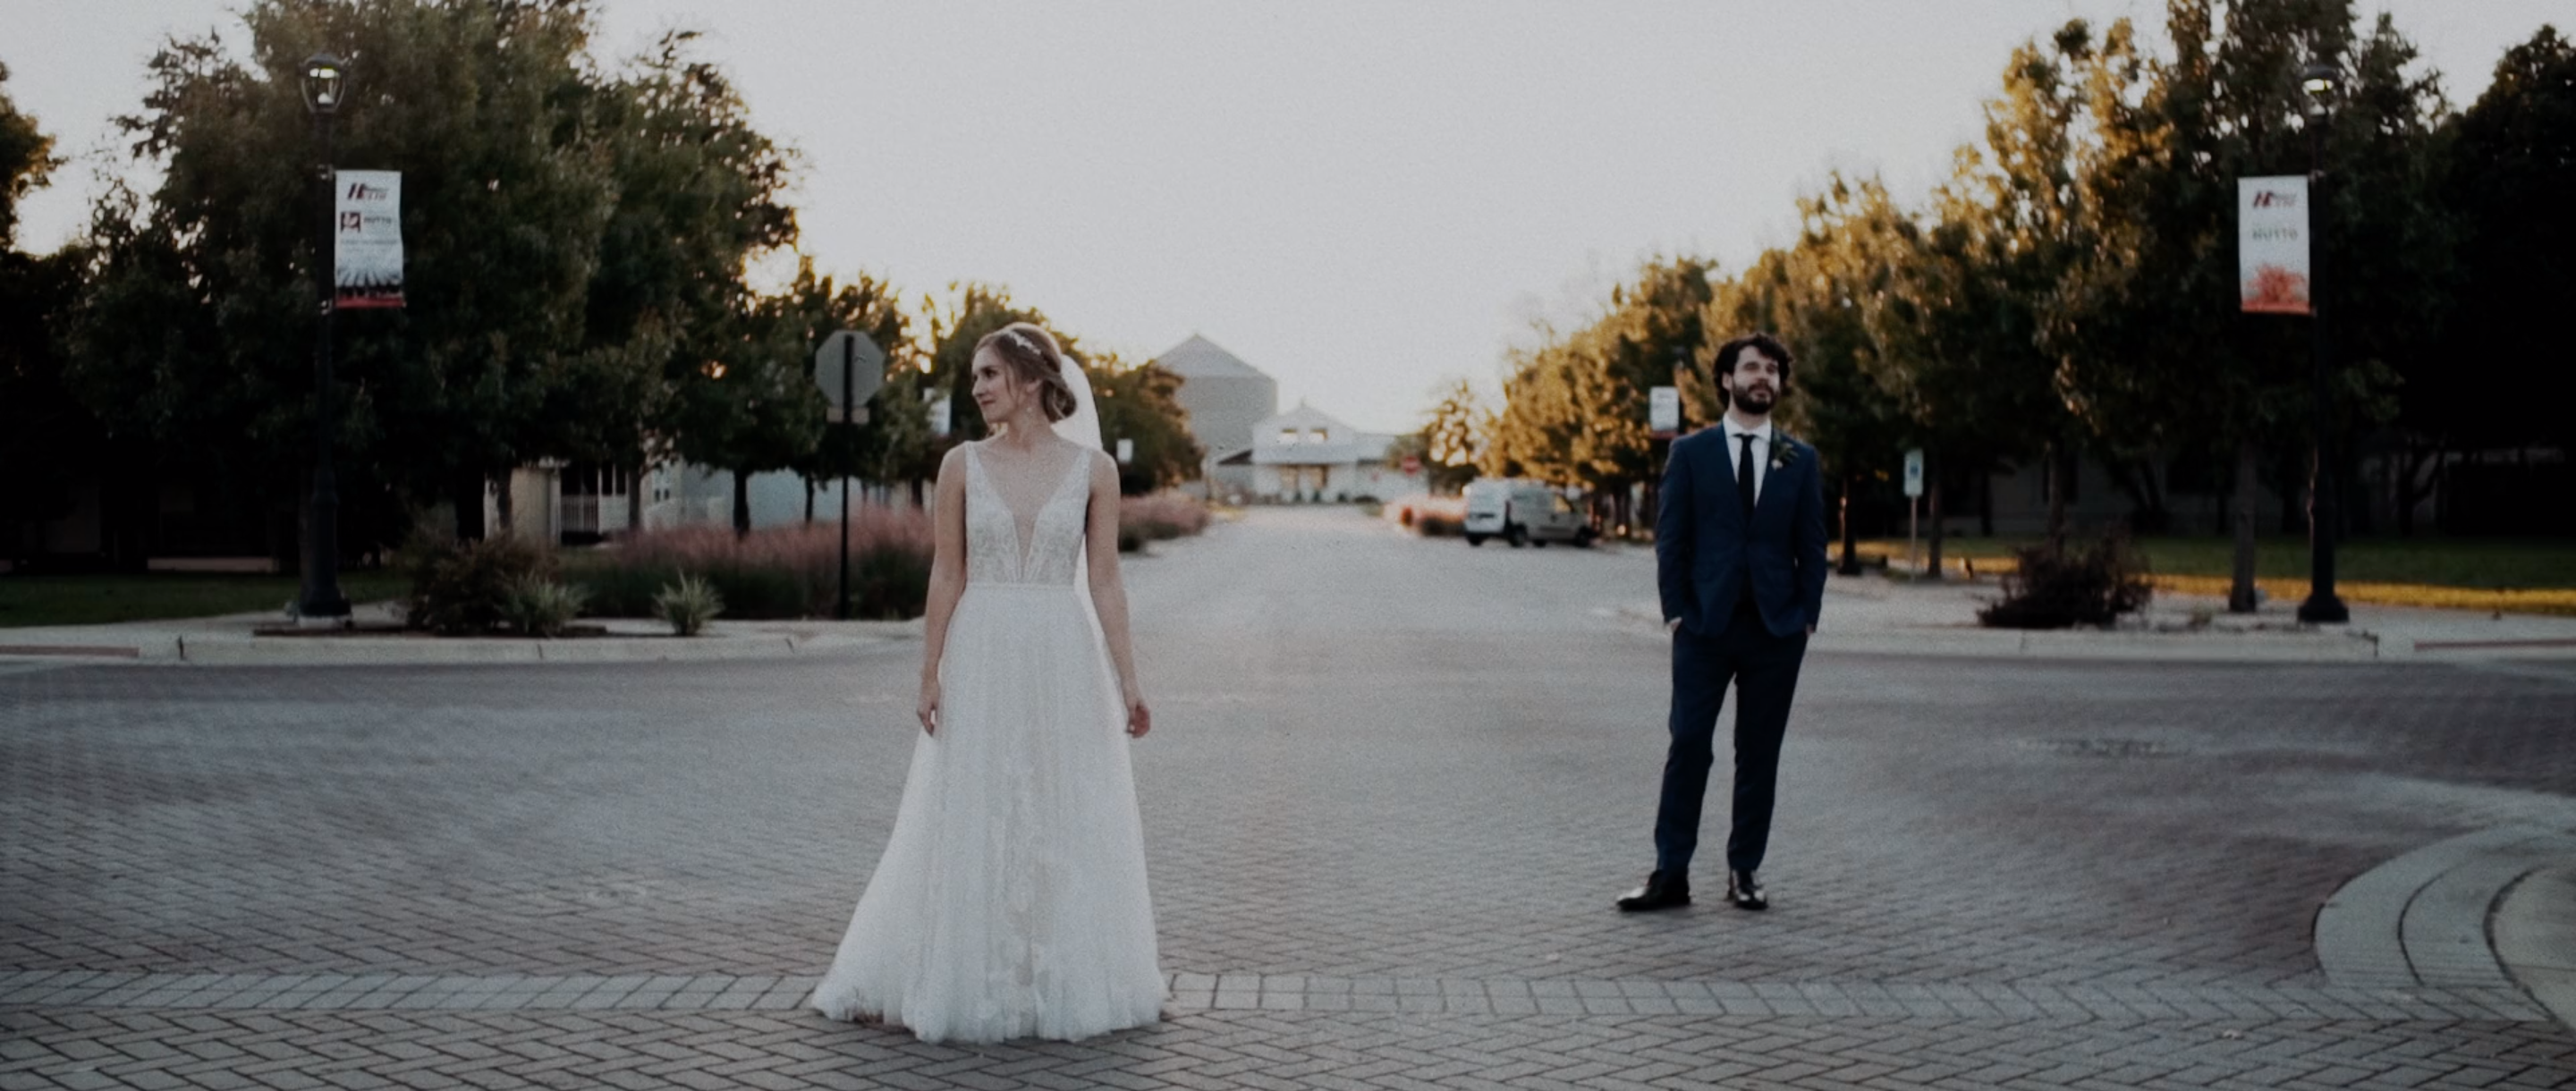 Andy + Anna | Hutto, Texas | One Eleven East